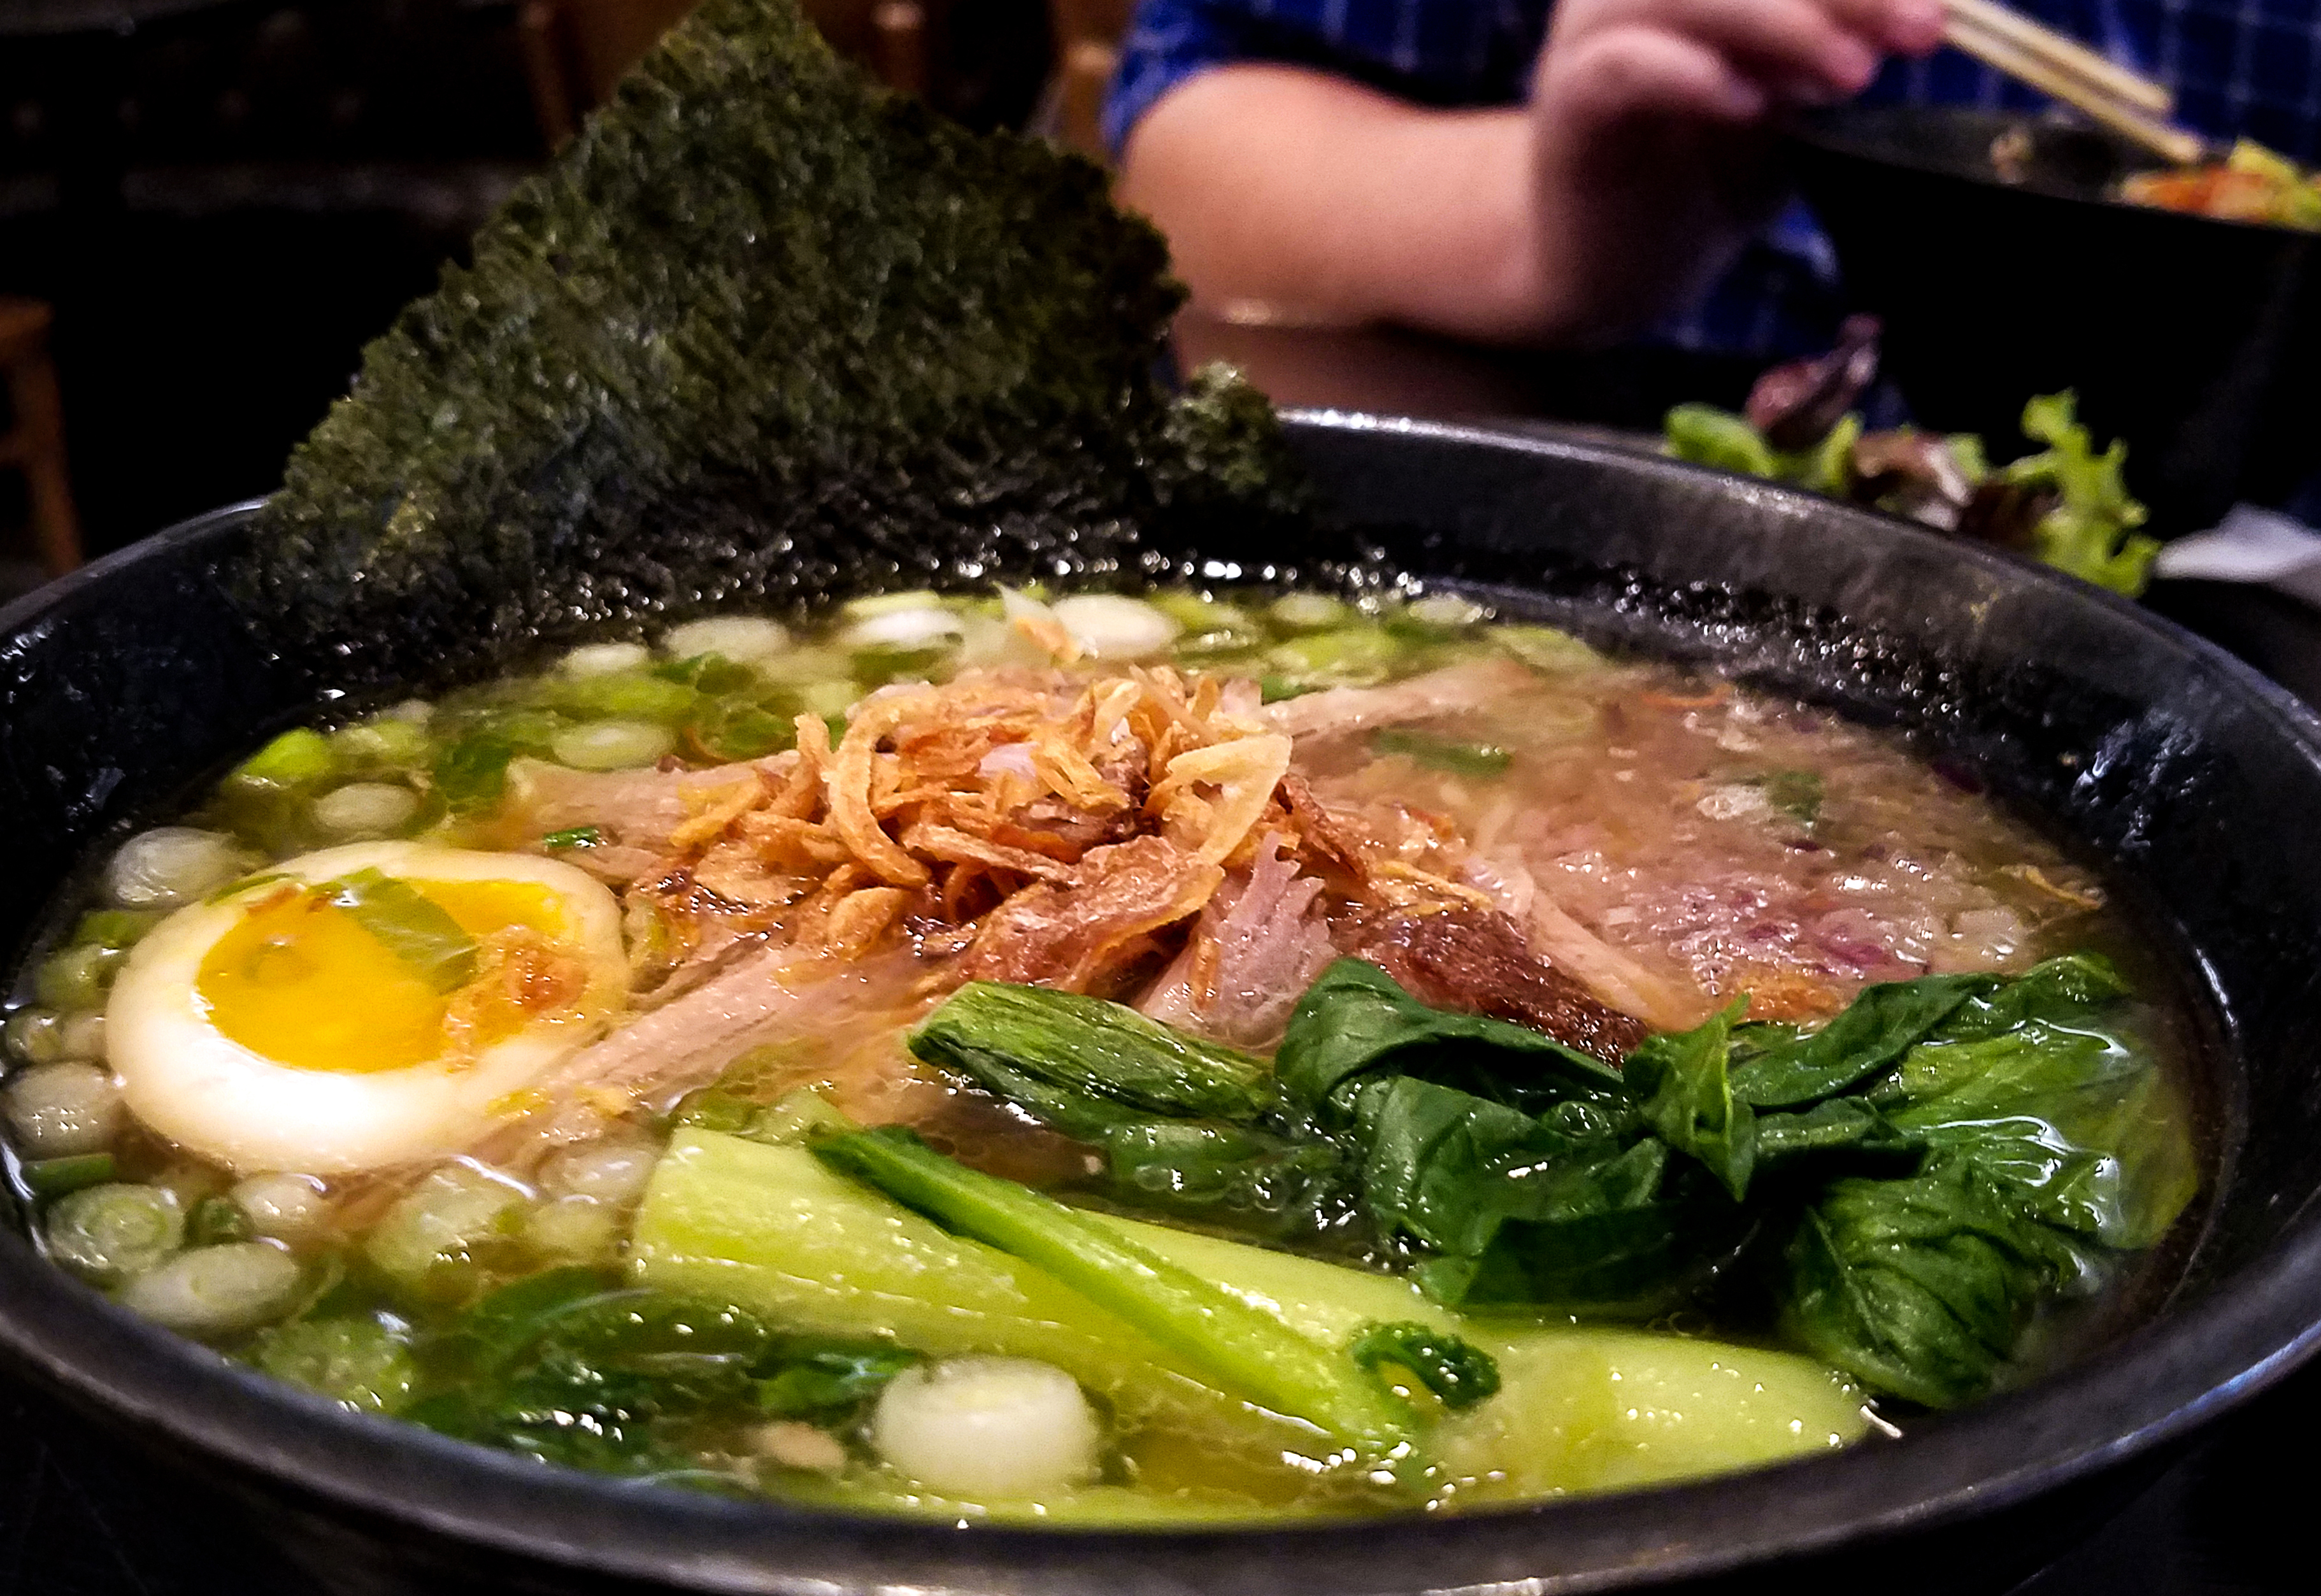 Tokyo Shoyu Chasu pork ramen at Miso Good Ramen in Snata Rosa. Heather Irwin/PD